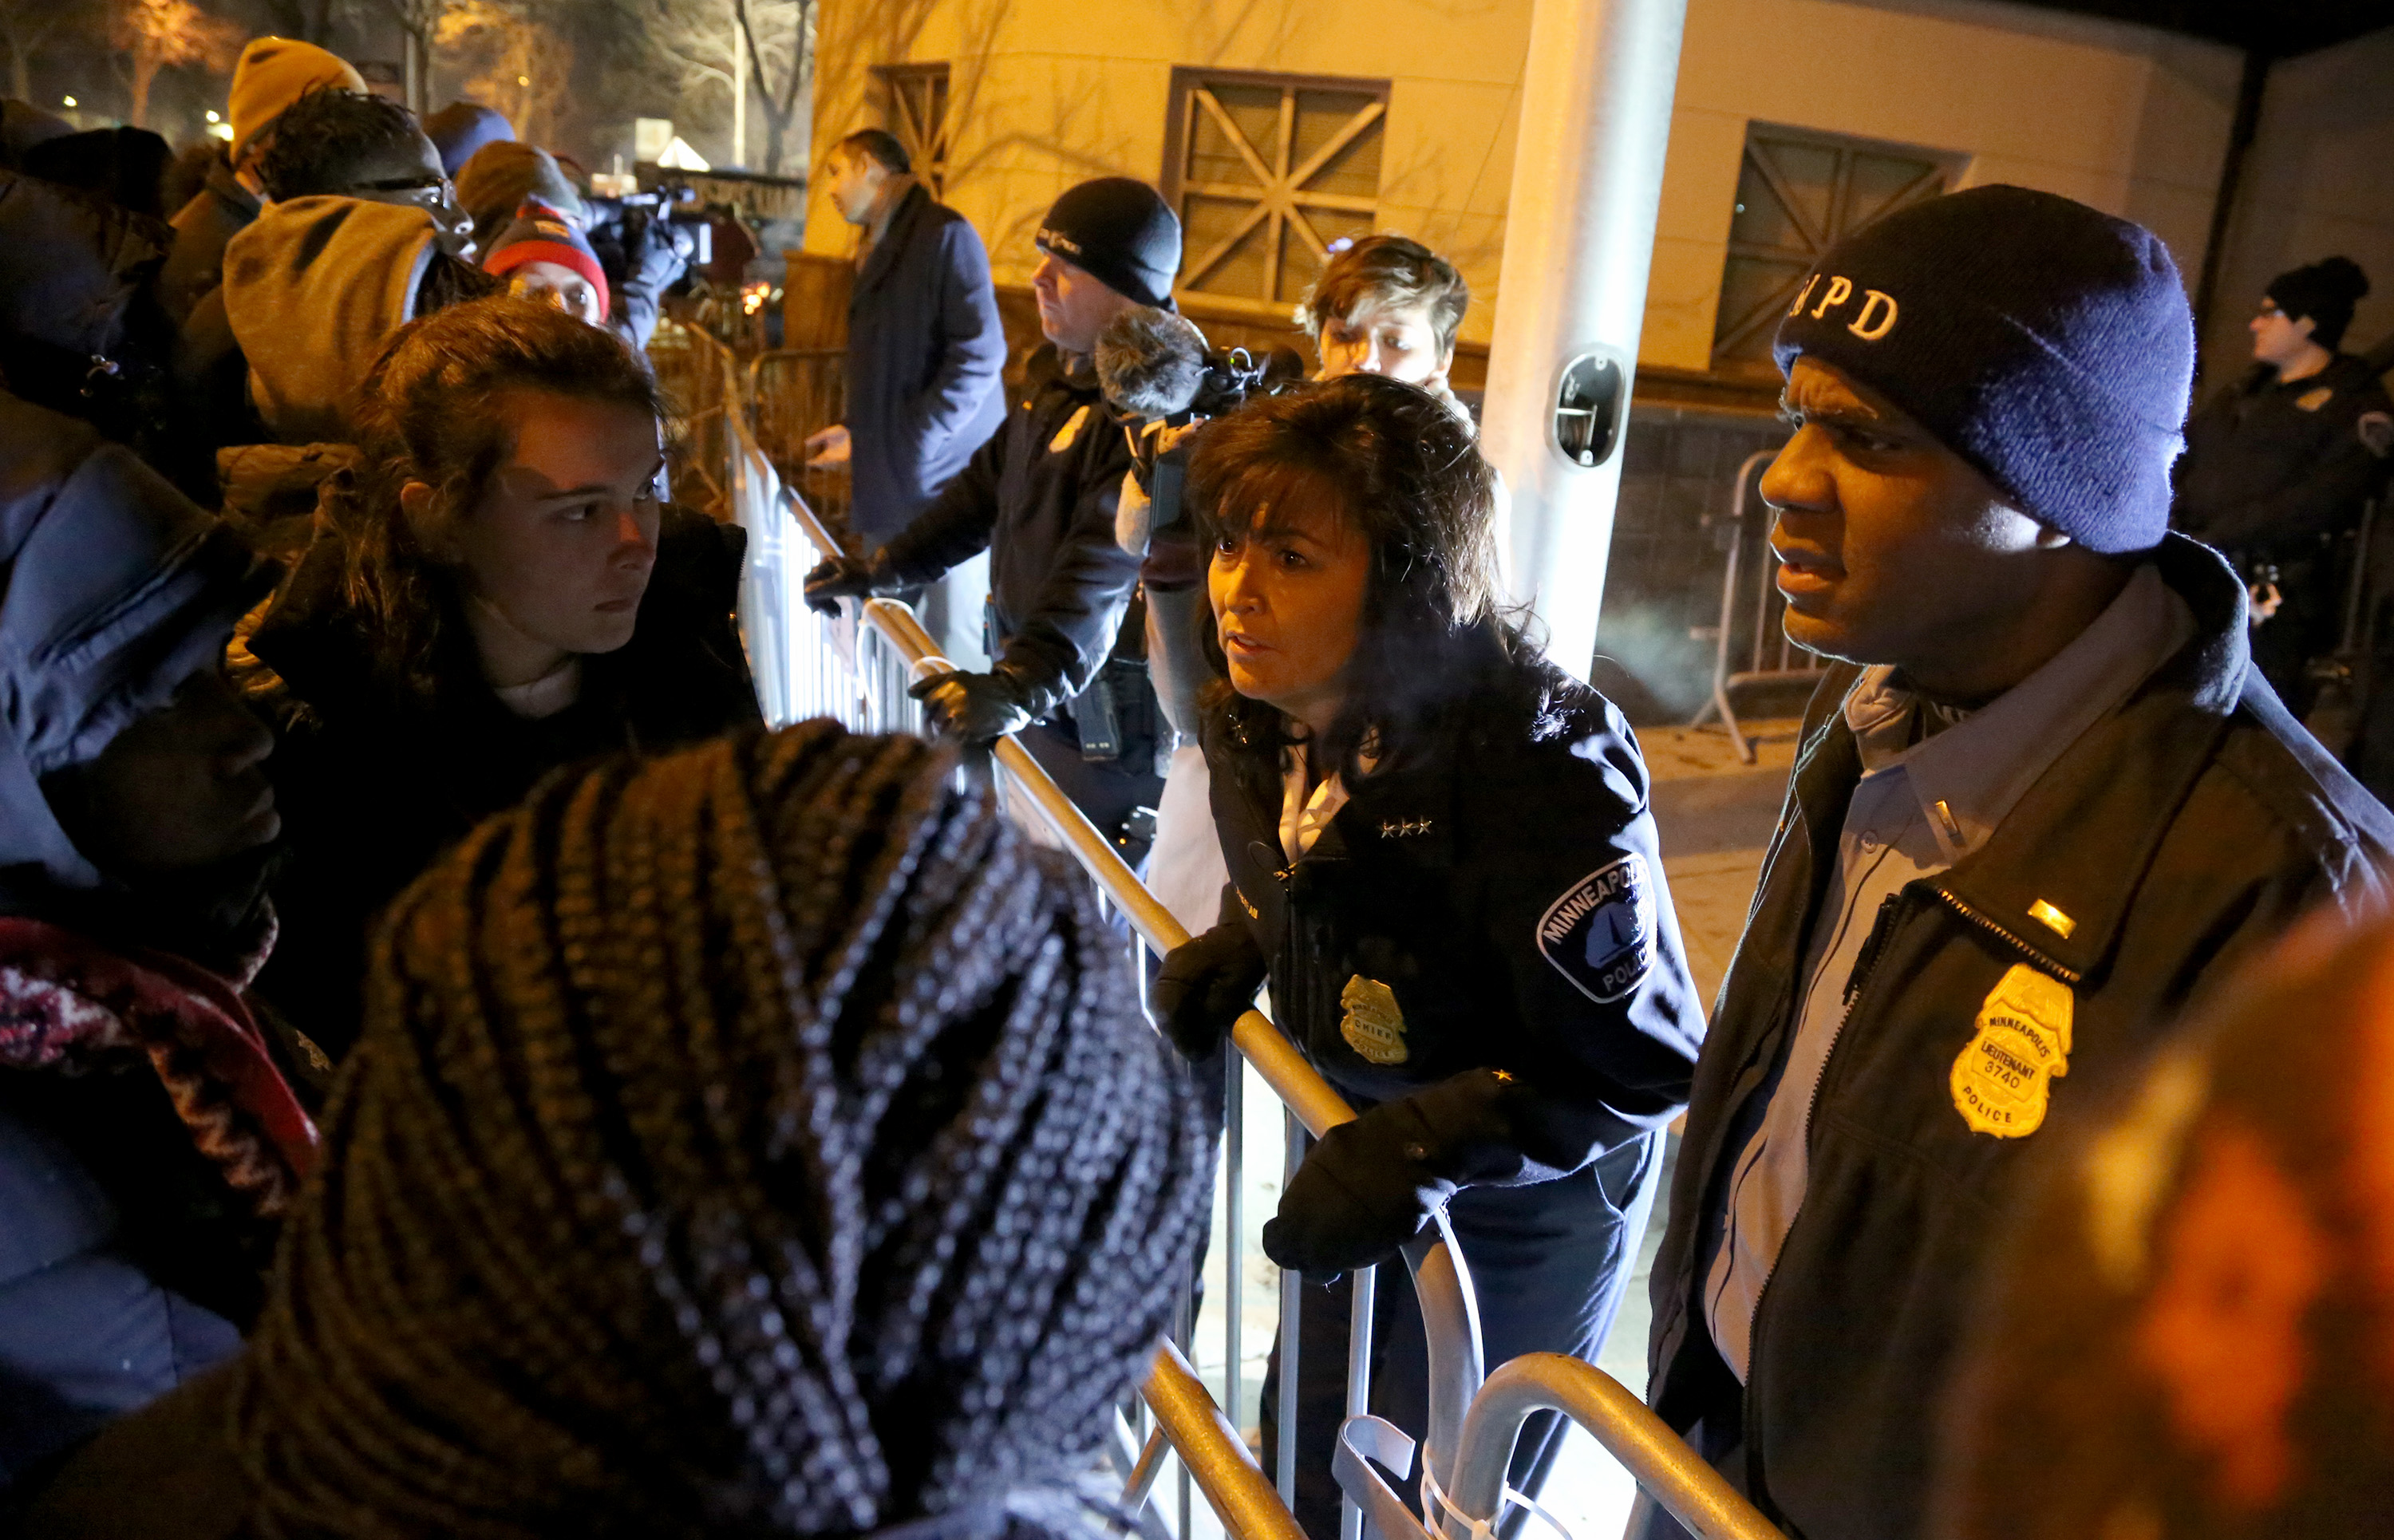 Minneapolis Police Chief Janee Harteau was asked a flood a questions from protesters in front of the Minneapolis Fourth Precinct. ] (KYNDELL HARKNESS/STAR TRIBUNE) kyndell.harkness@startribune.com Protesters in front of Minneapolis Fourth Precinct in Minneapolis Min., Friday November 20, 2015.